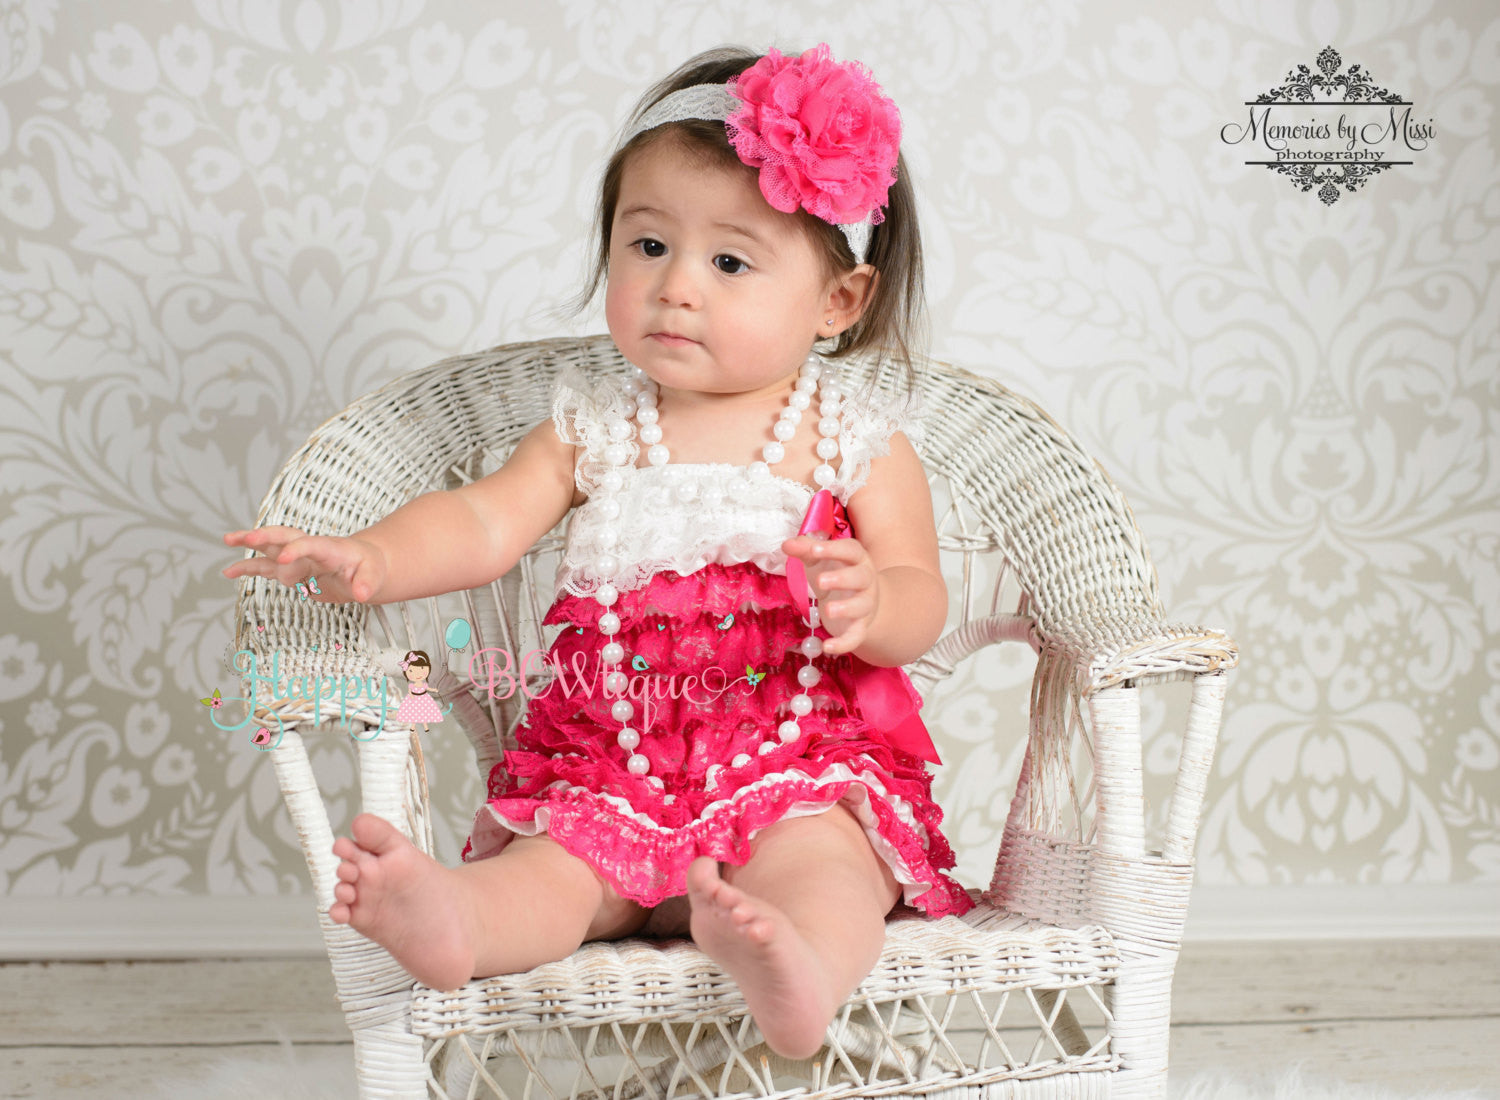 Hot Pink Chiffon Lace flower puff headband - Happy BOWtique - children's clothing, Baby Girl clothing